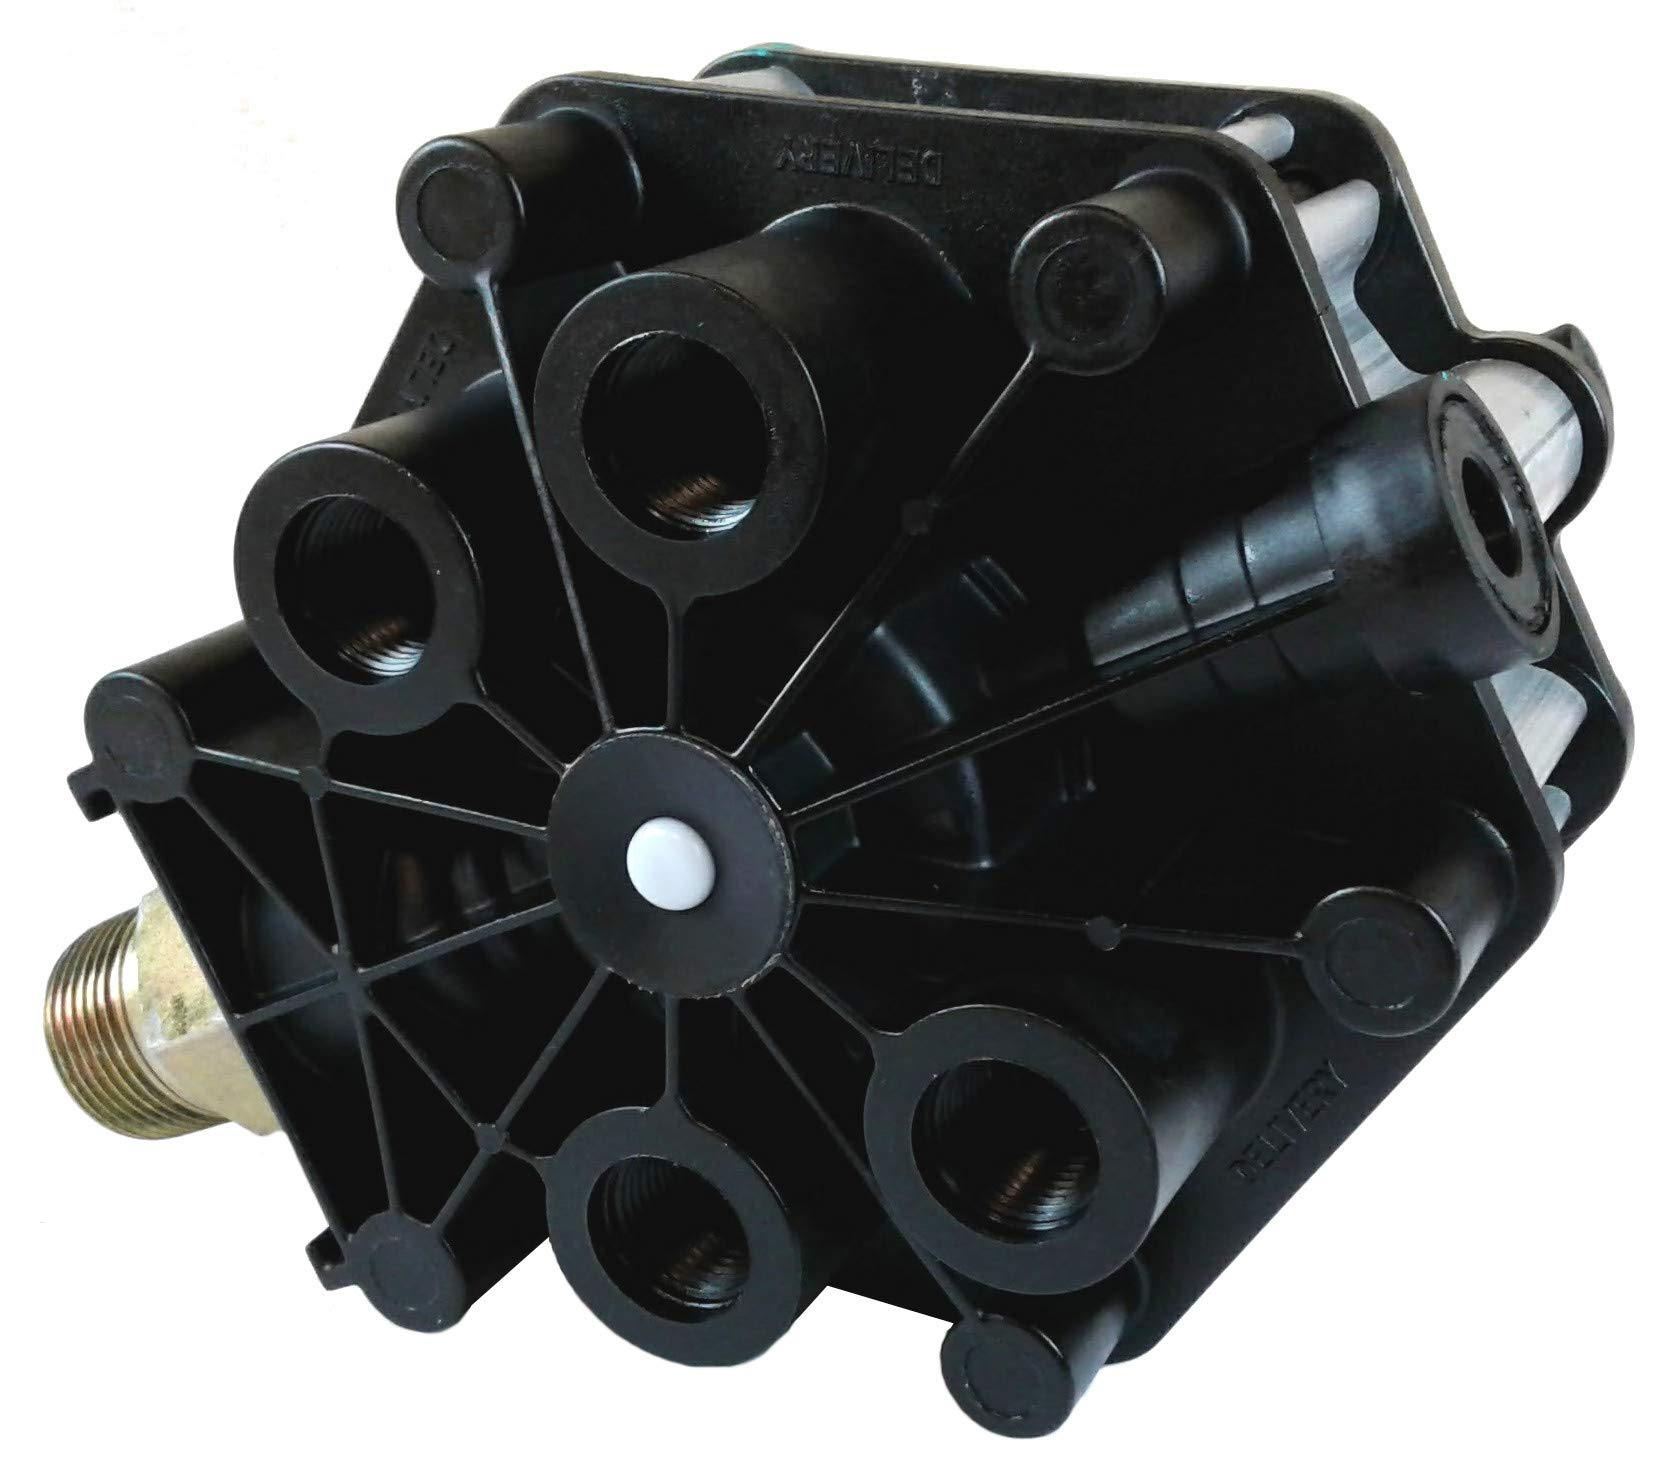 FF2 Full Function Trailer Brake Valve - 3/4'' Reservoir for Heavy Duty Big Rigs by Brianna Auto Parts (BAP) (Image #5)